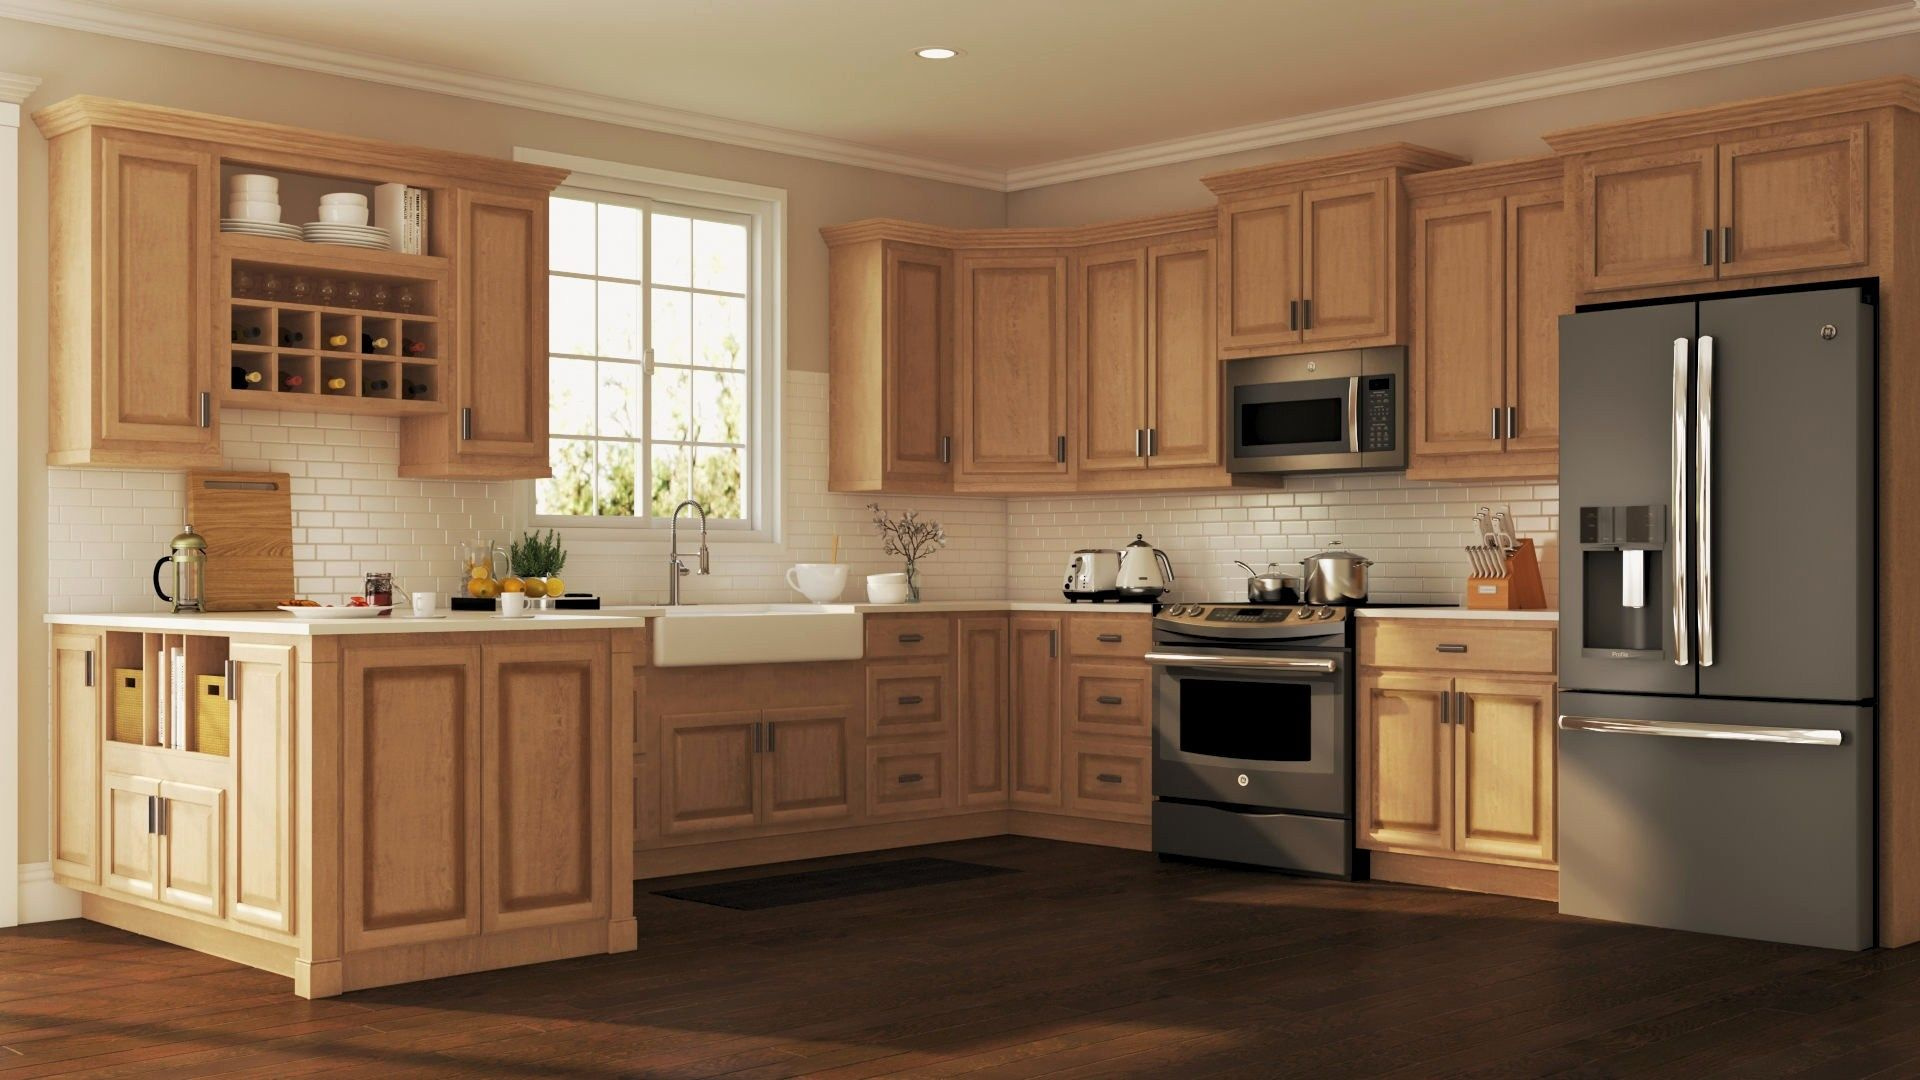 20 Lovely Summer Kitchens Used Kitchen Cabinets Kitchen Cabinet Styles Home Depot Kitchen